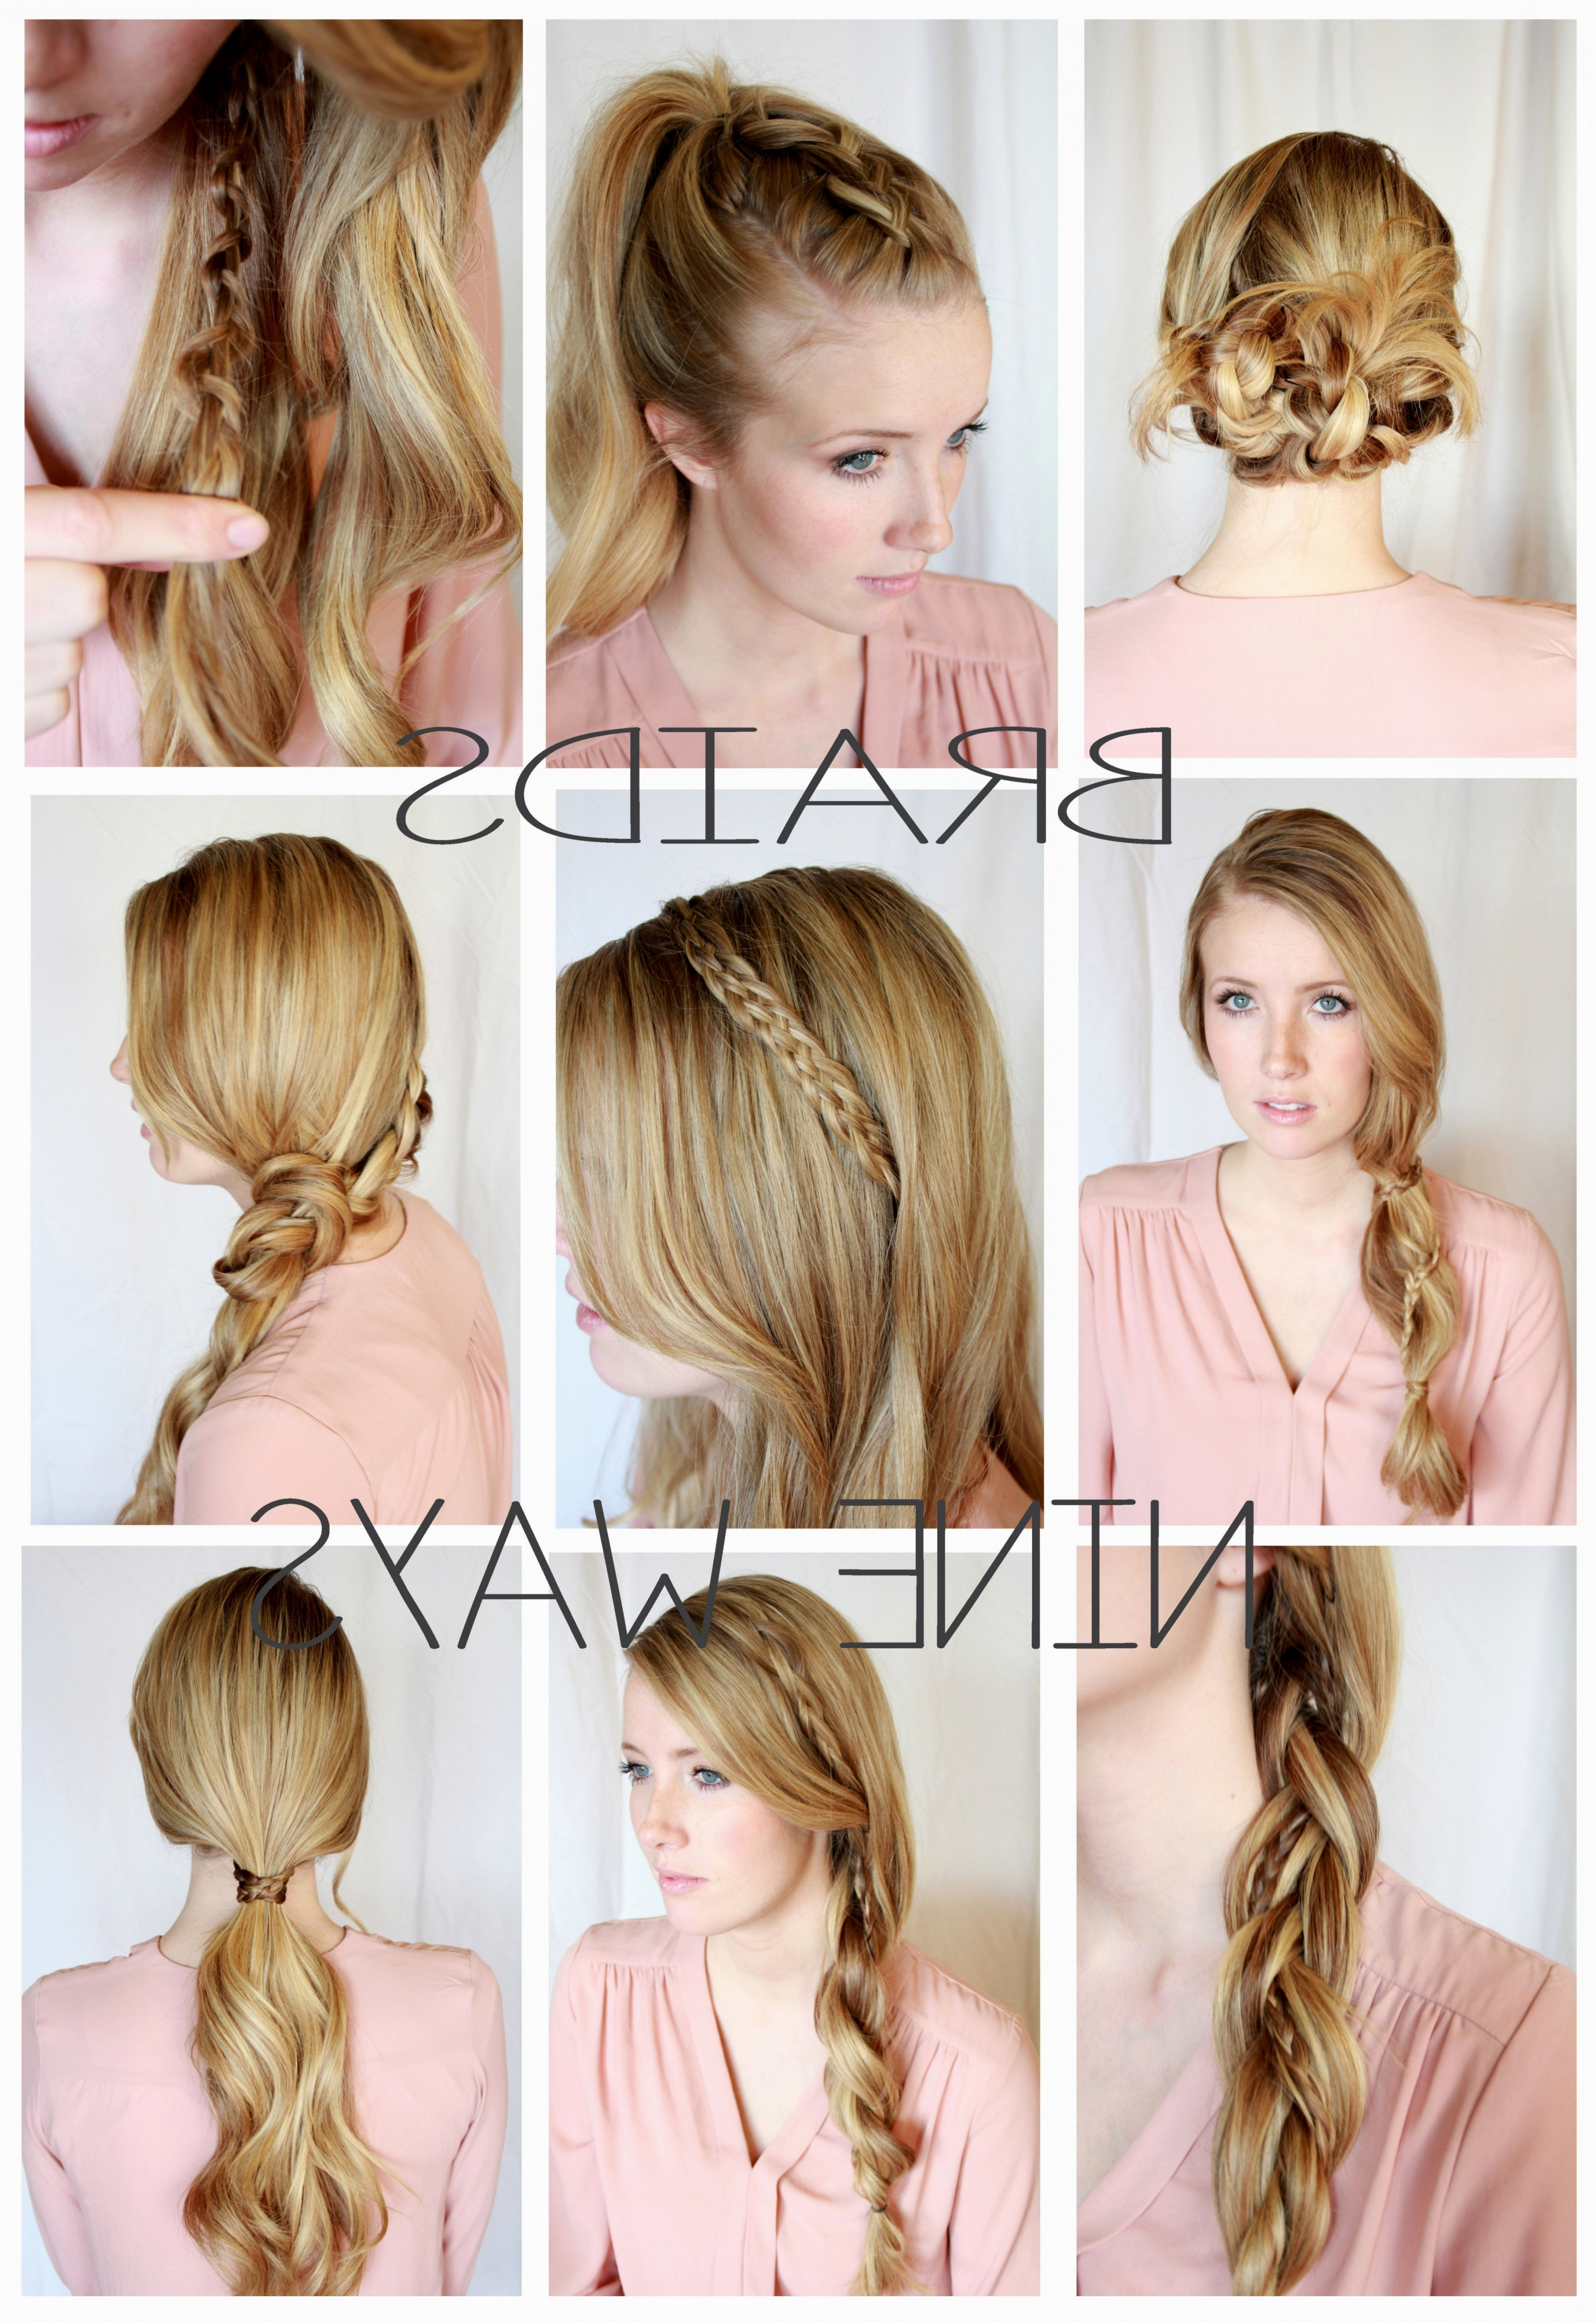 Most Current Easy Braided Hairstyles Throughout Cute Easy Braided Hairstyles Collection Of Solutions Cute Braid (View 15 of 15)